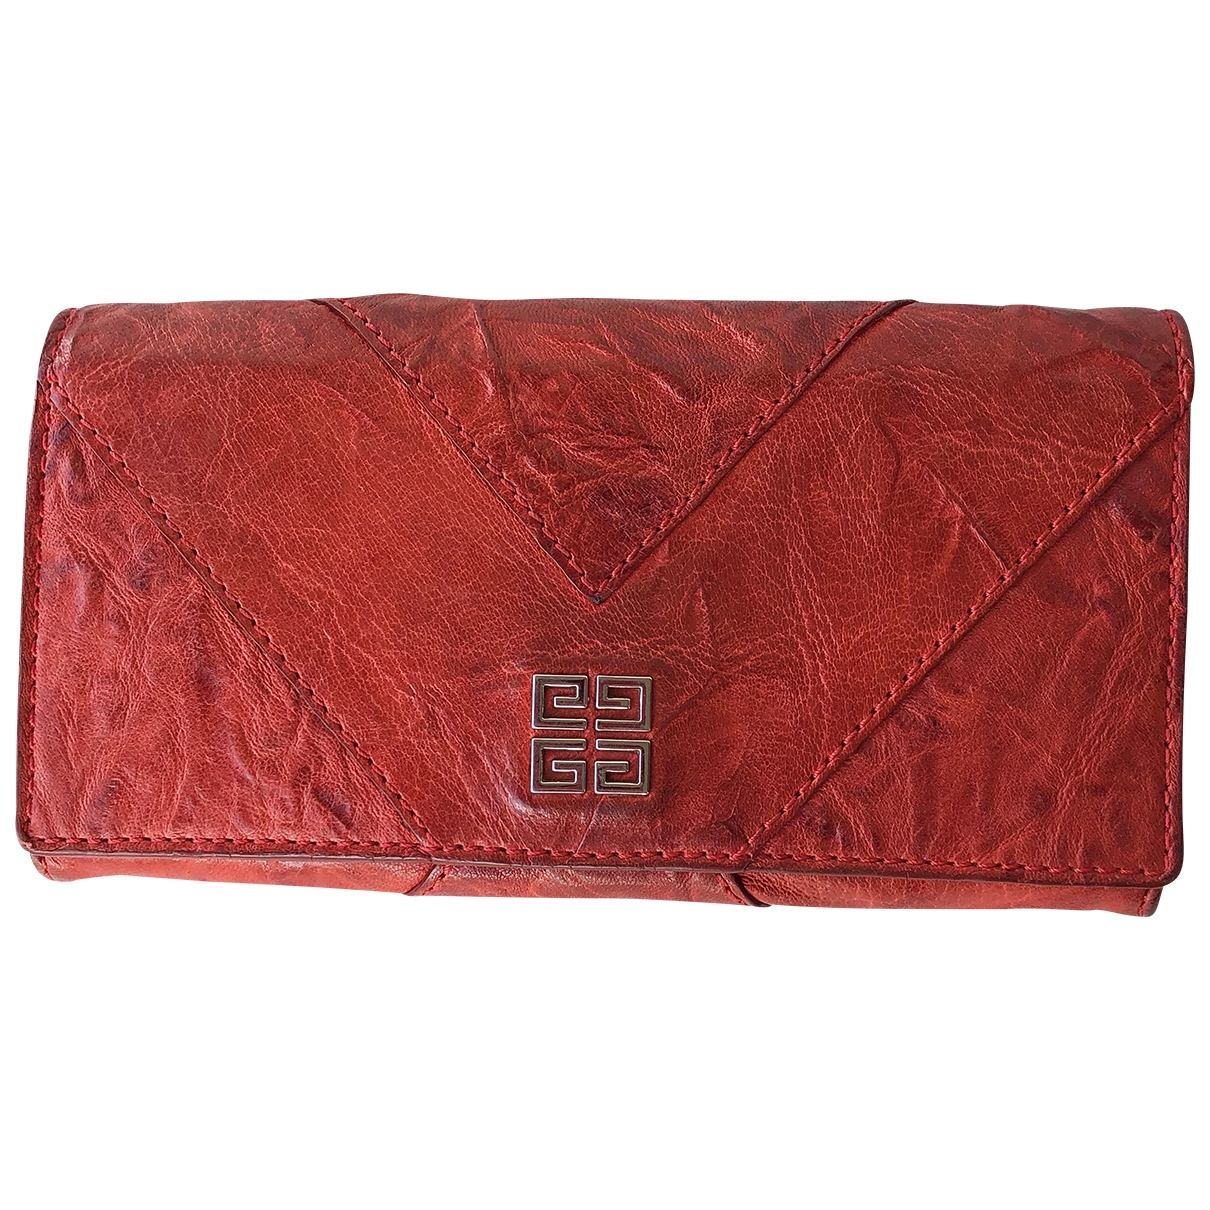 Givenchy \N Red Leather Purses, wallet & cases for Women \N